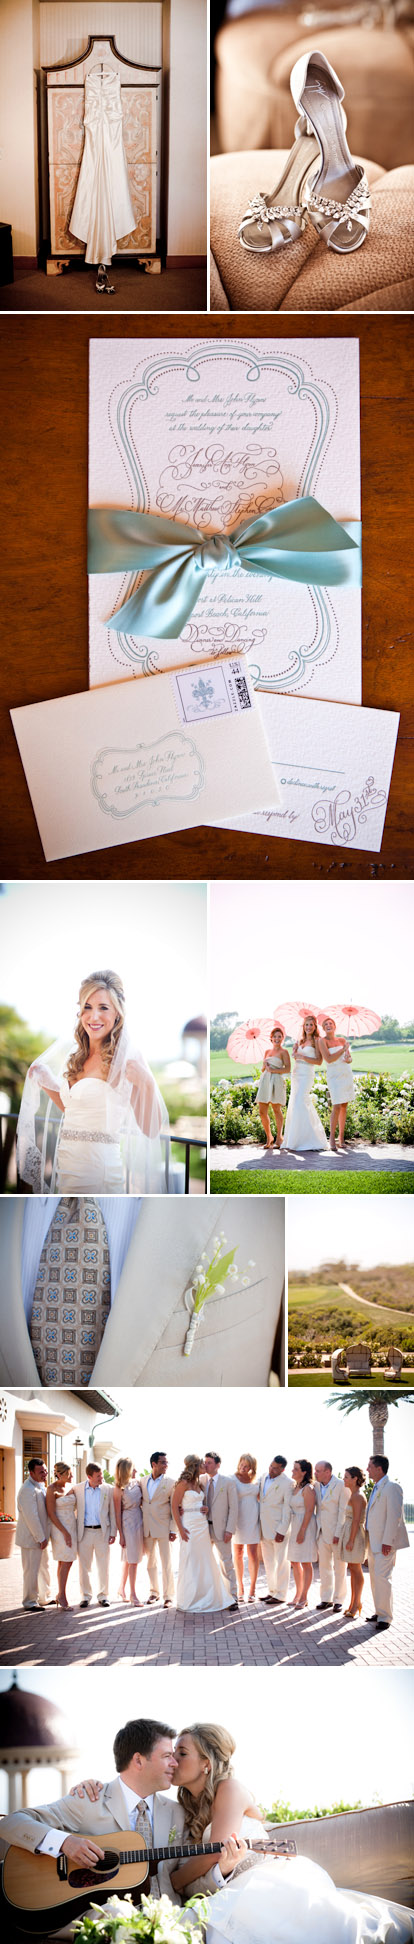 Vintage style Real Wedding by Mindy Weiss at The Resort at Pelican Hill, teal, peach and rose gold wedding color palette, images by Jay Lawrence Goldman